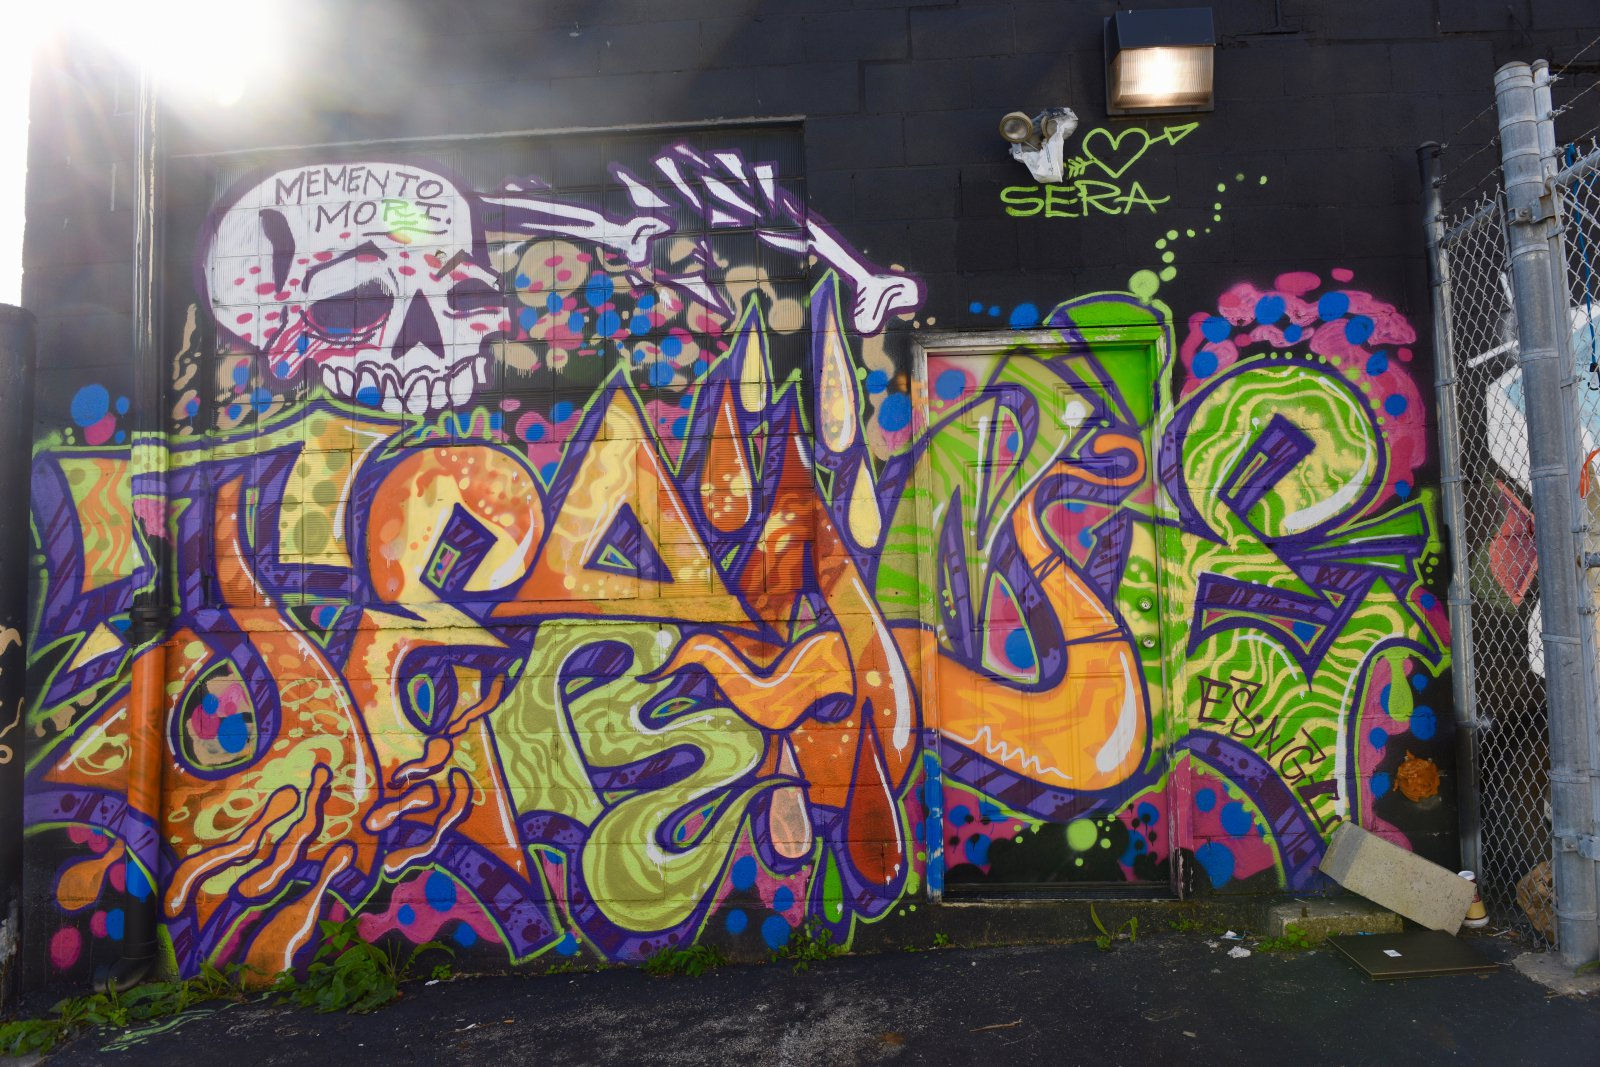 This graffiti-style mural is south of West National Avenue and 11th Street